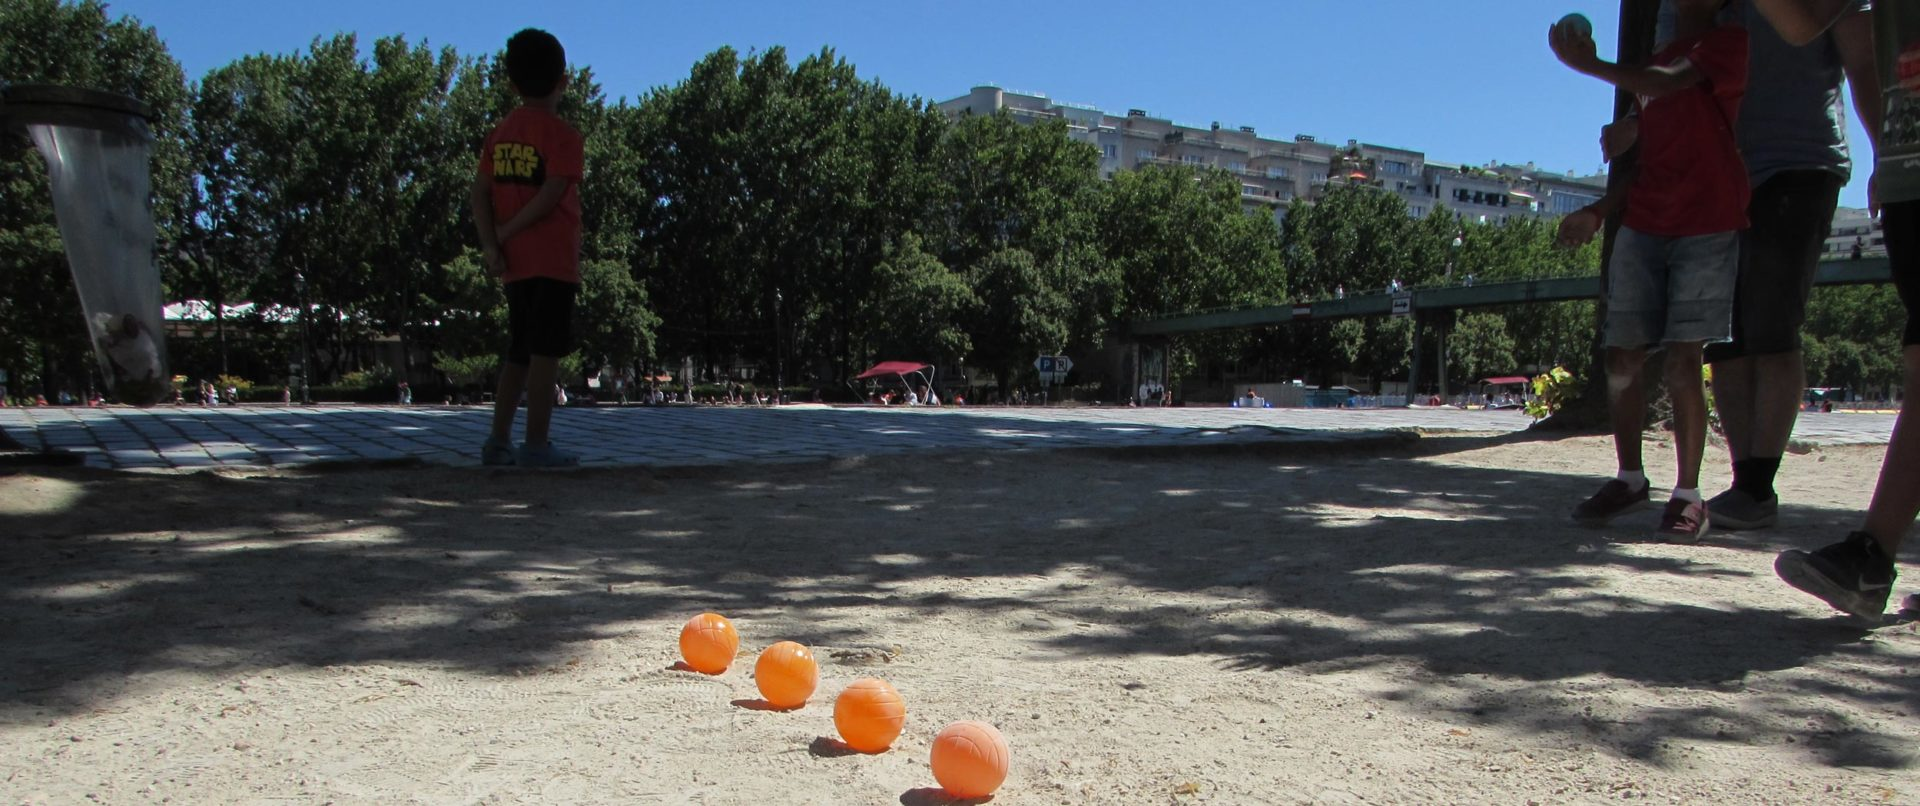 paris-cruise-petanque-game-fun-guided-tour